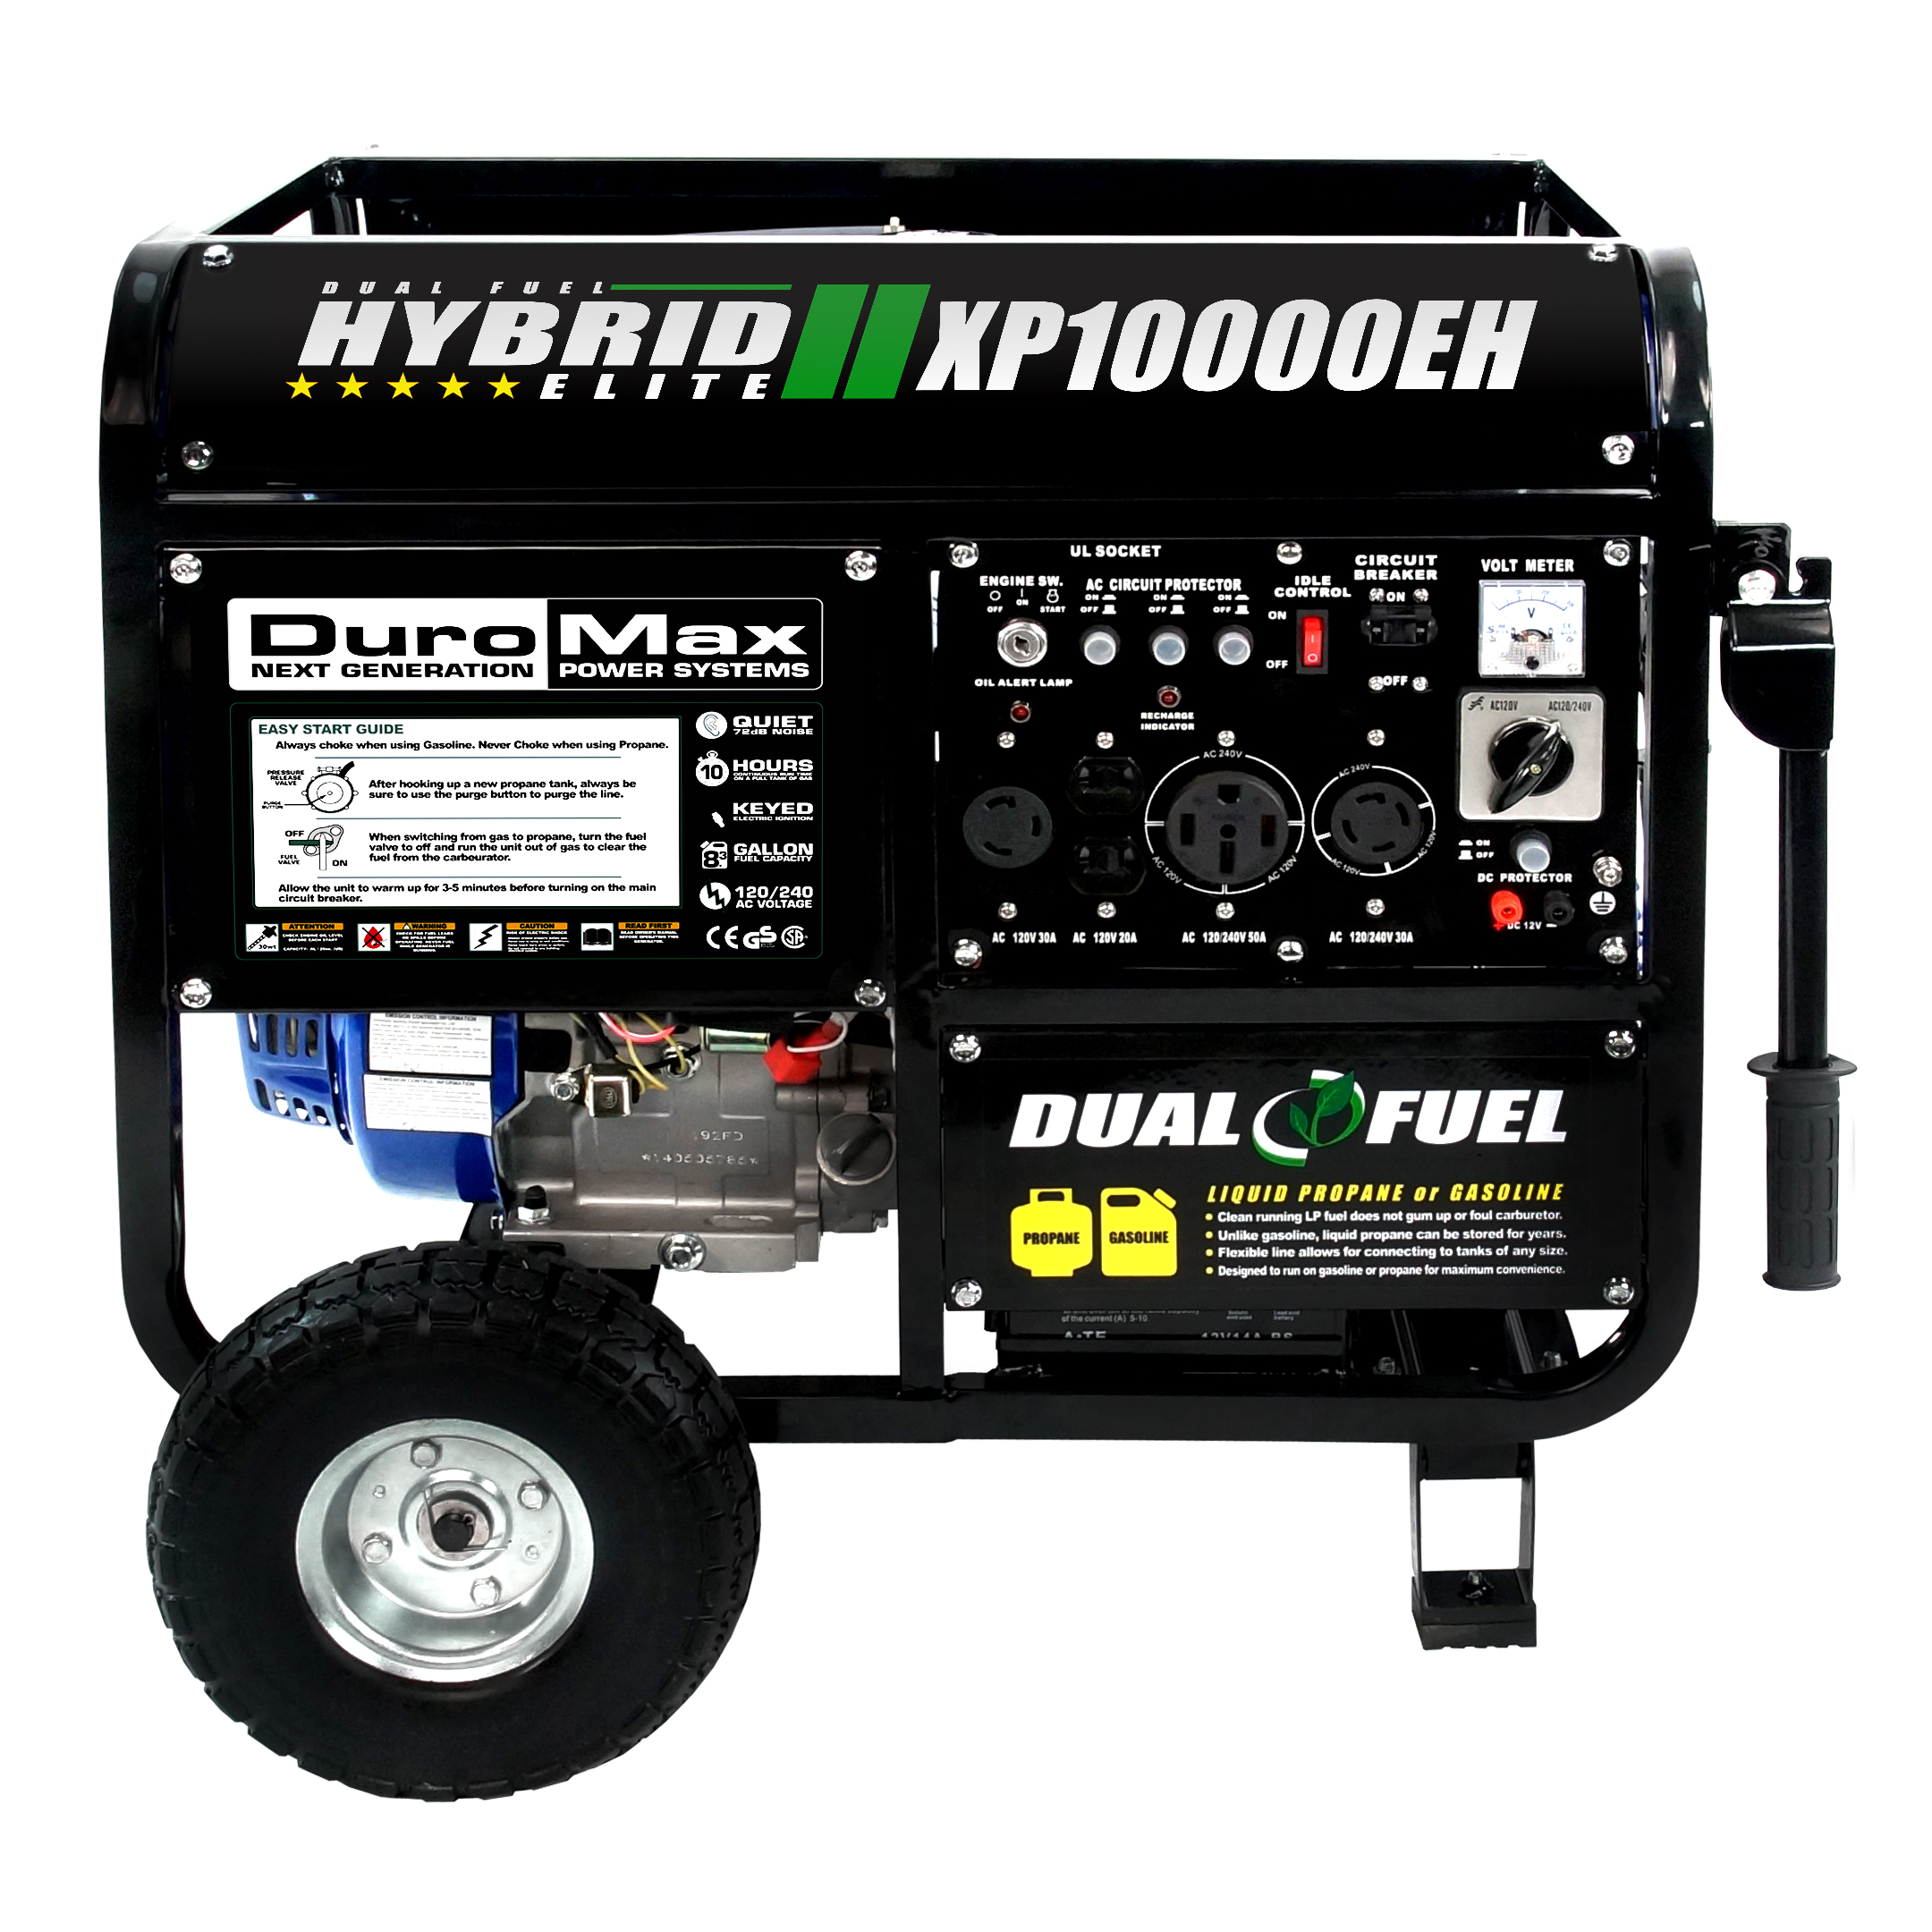 Gas generator to give 79